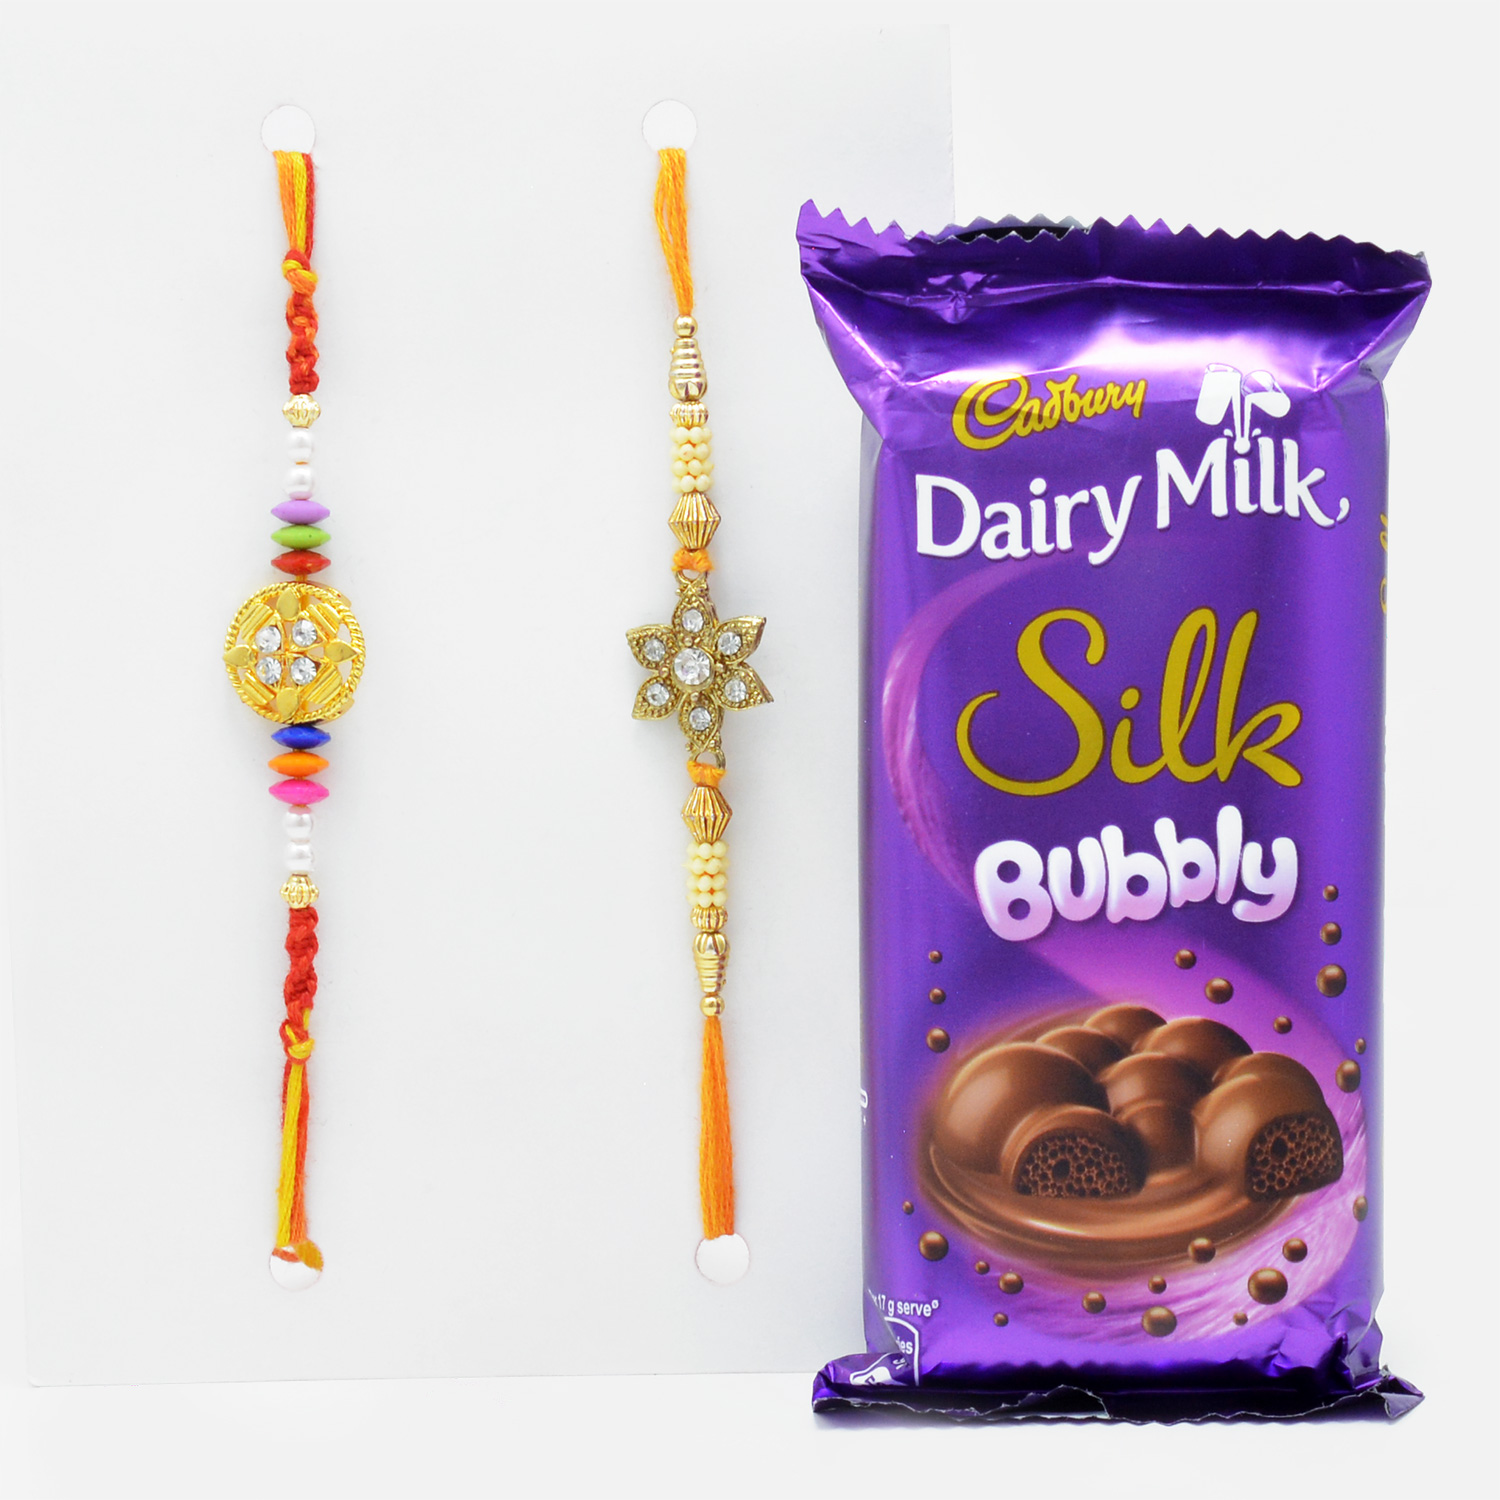 Beautiful Floral Designer Rakhi Set of 2 with Amazing Cadbury Dairy Milk Silk Bubbly